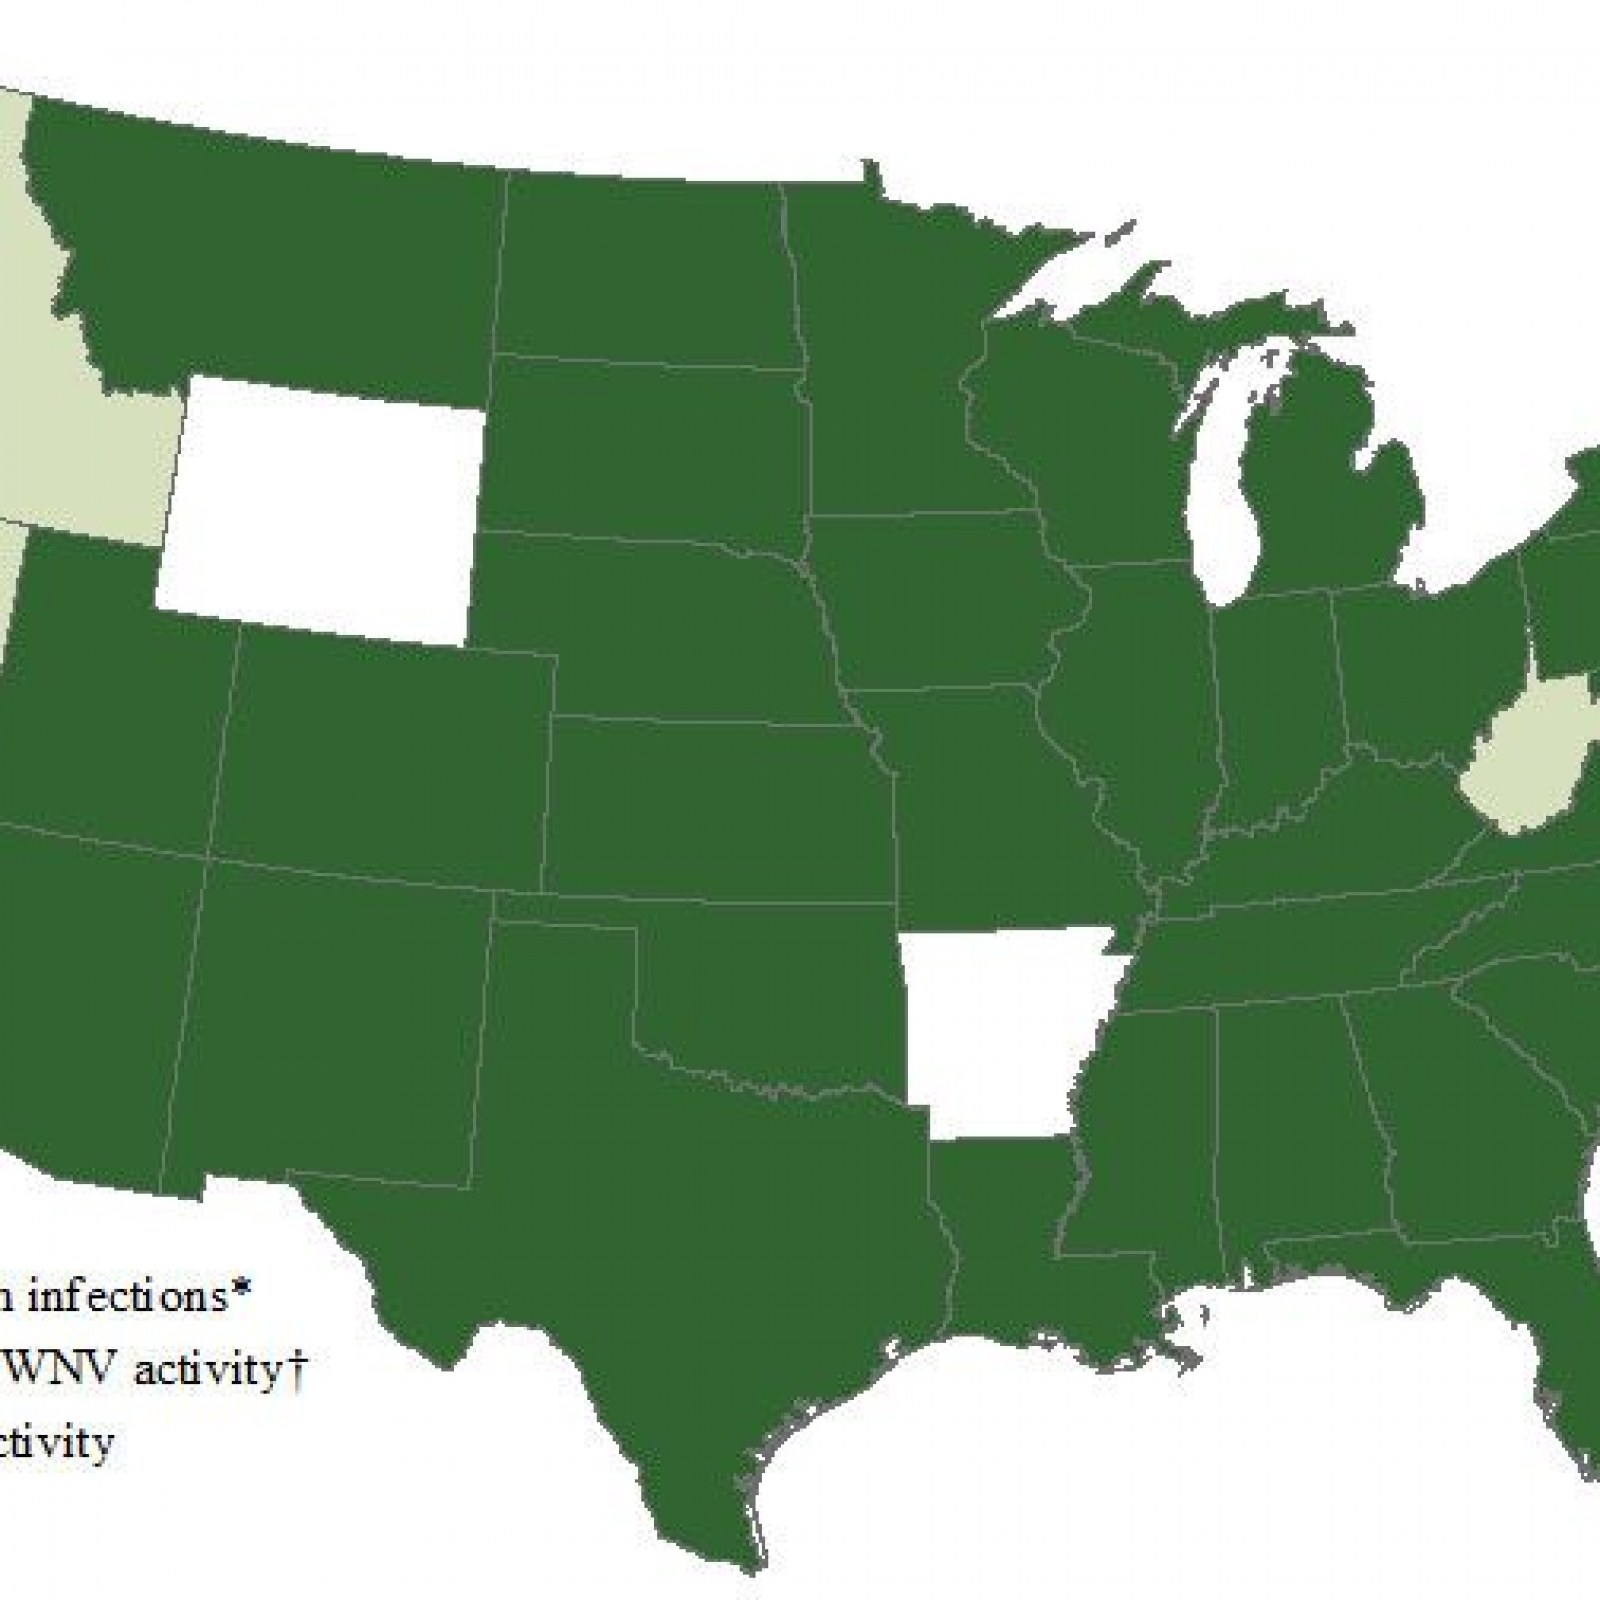 West Nile Virus Map Which States Have Confirmed Cases What Are The - Us-mosquito-population-map